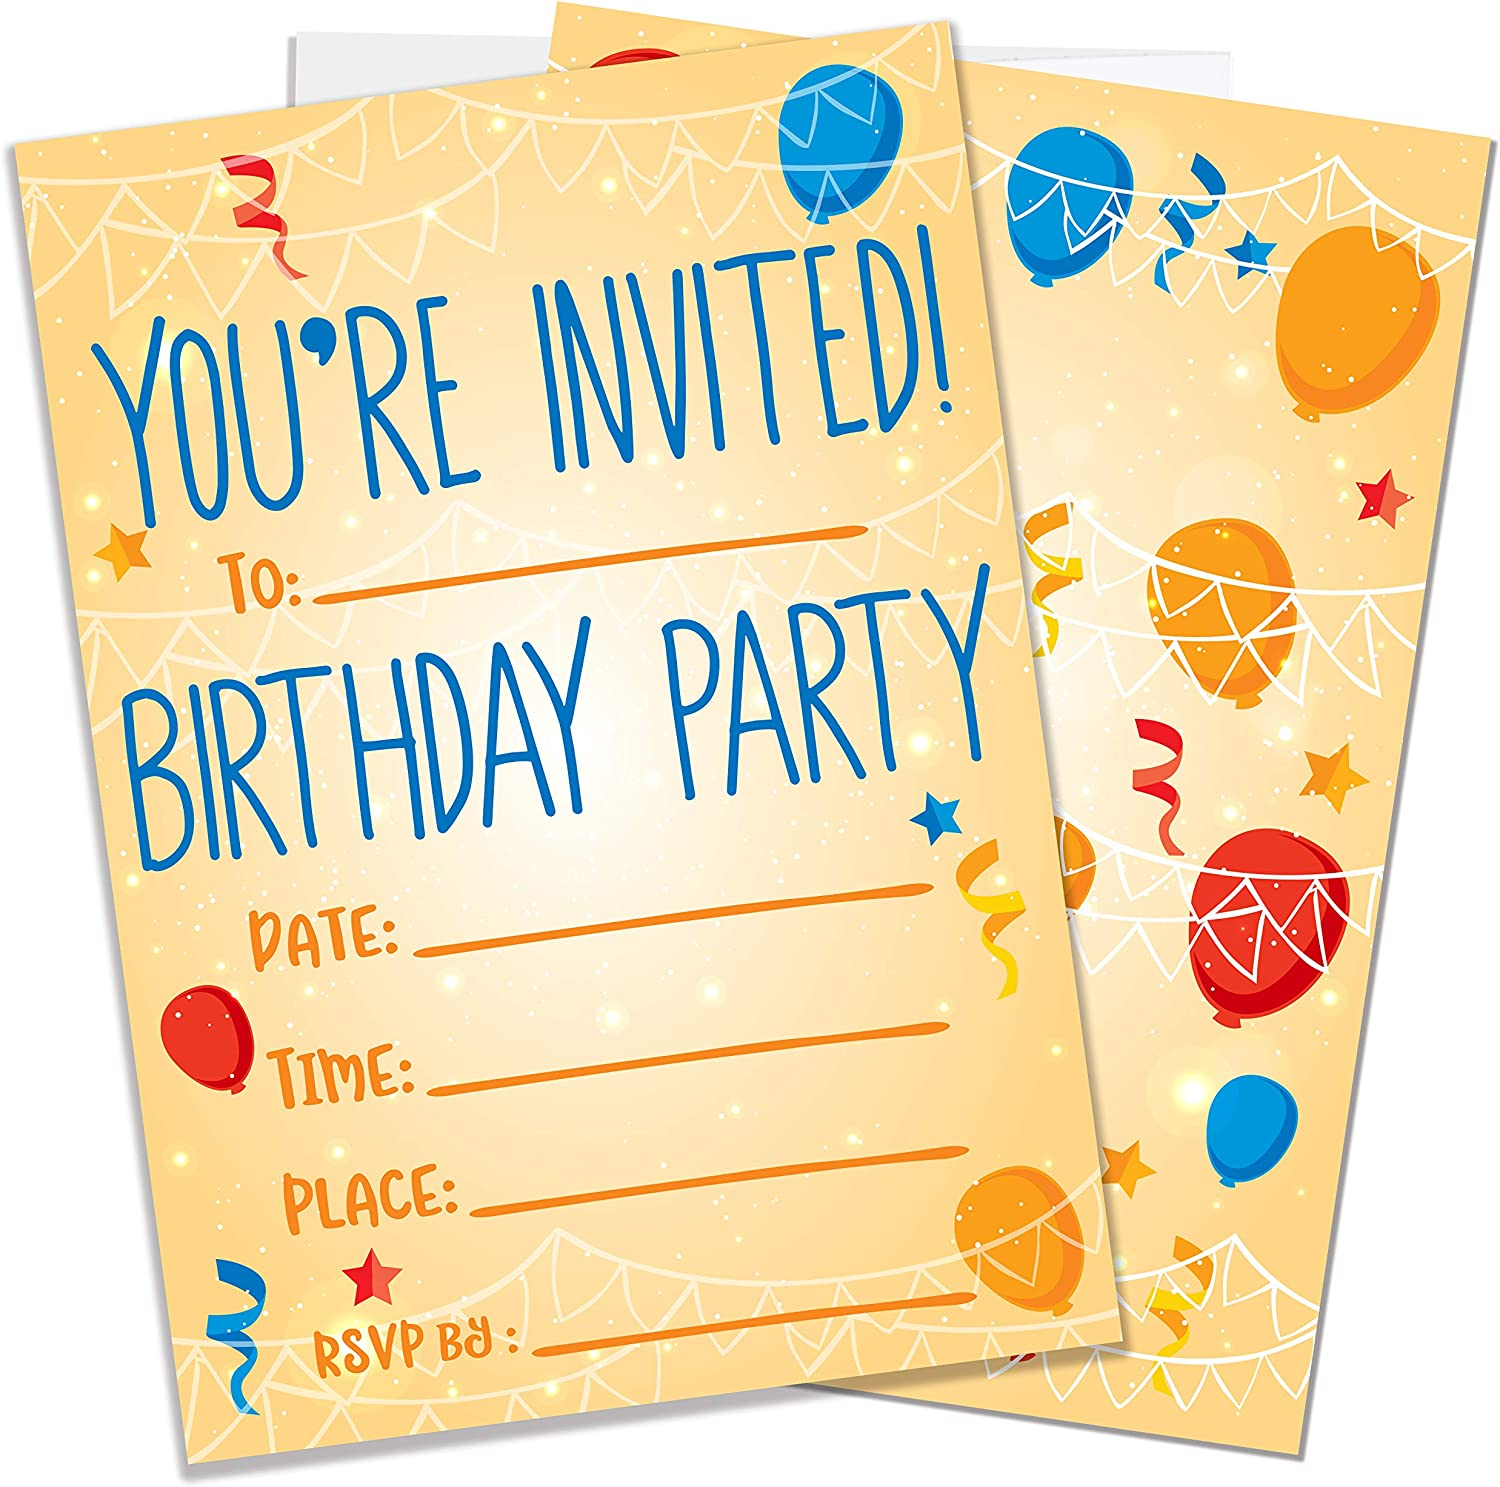 Party Invitations for Boys, Girls, Kids  5 Invite Cards with Envelopes   Birthday Party Supplies